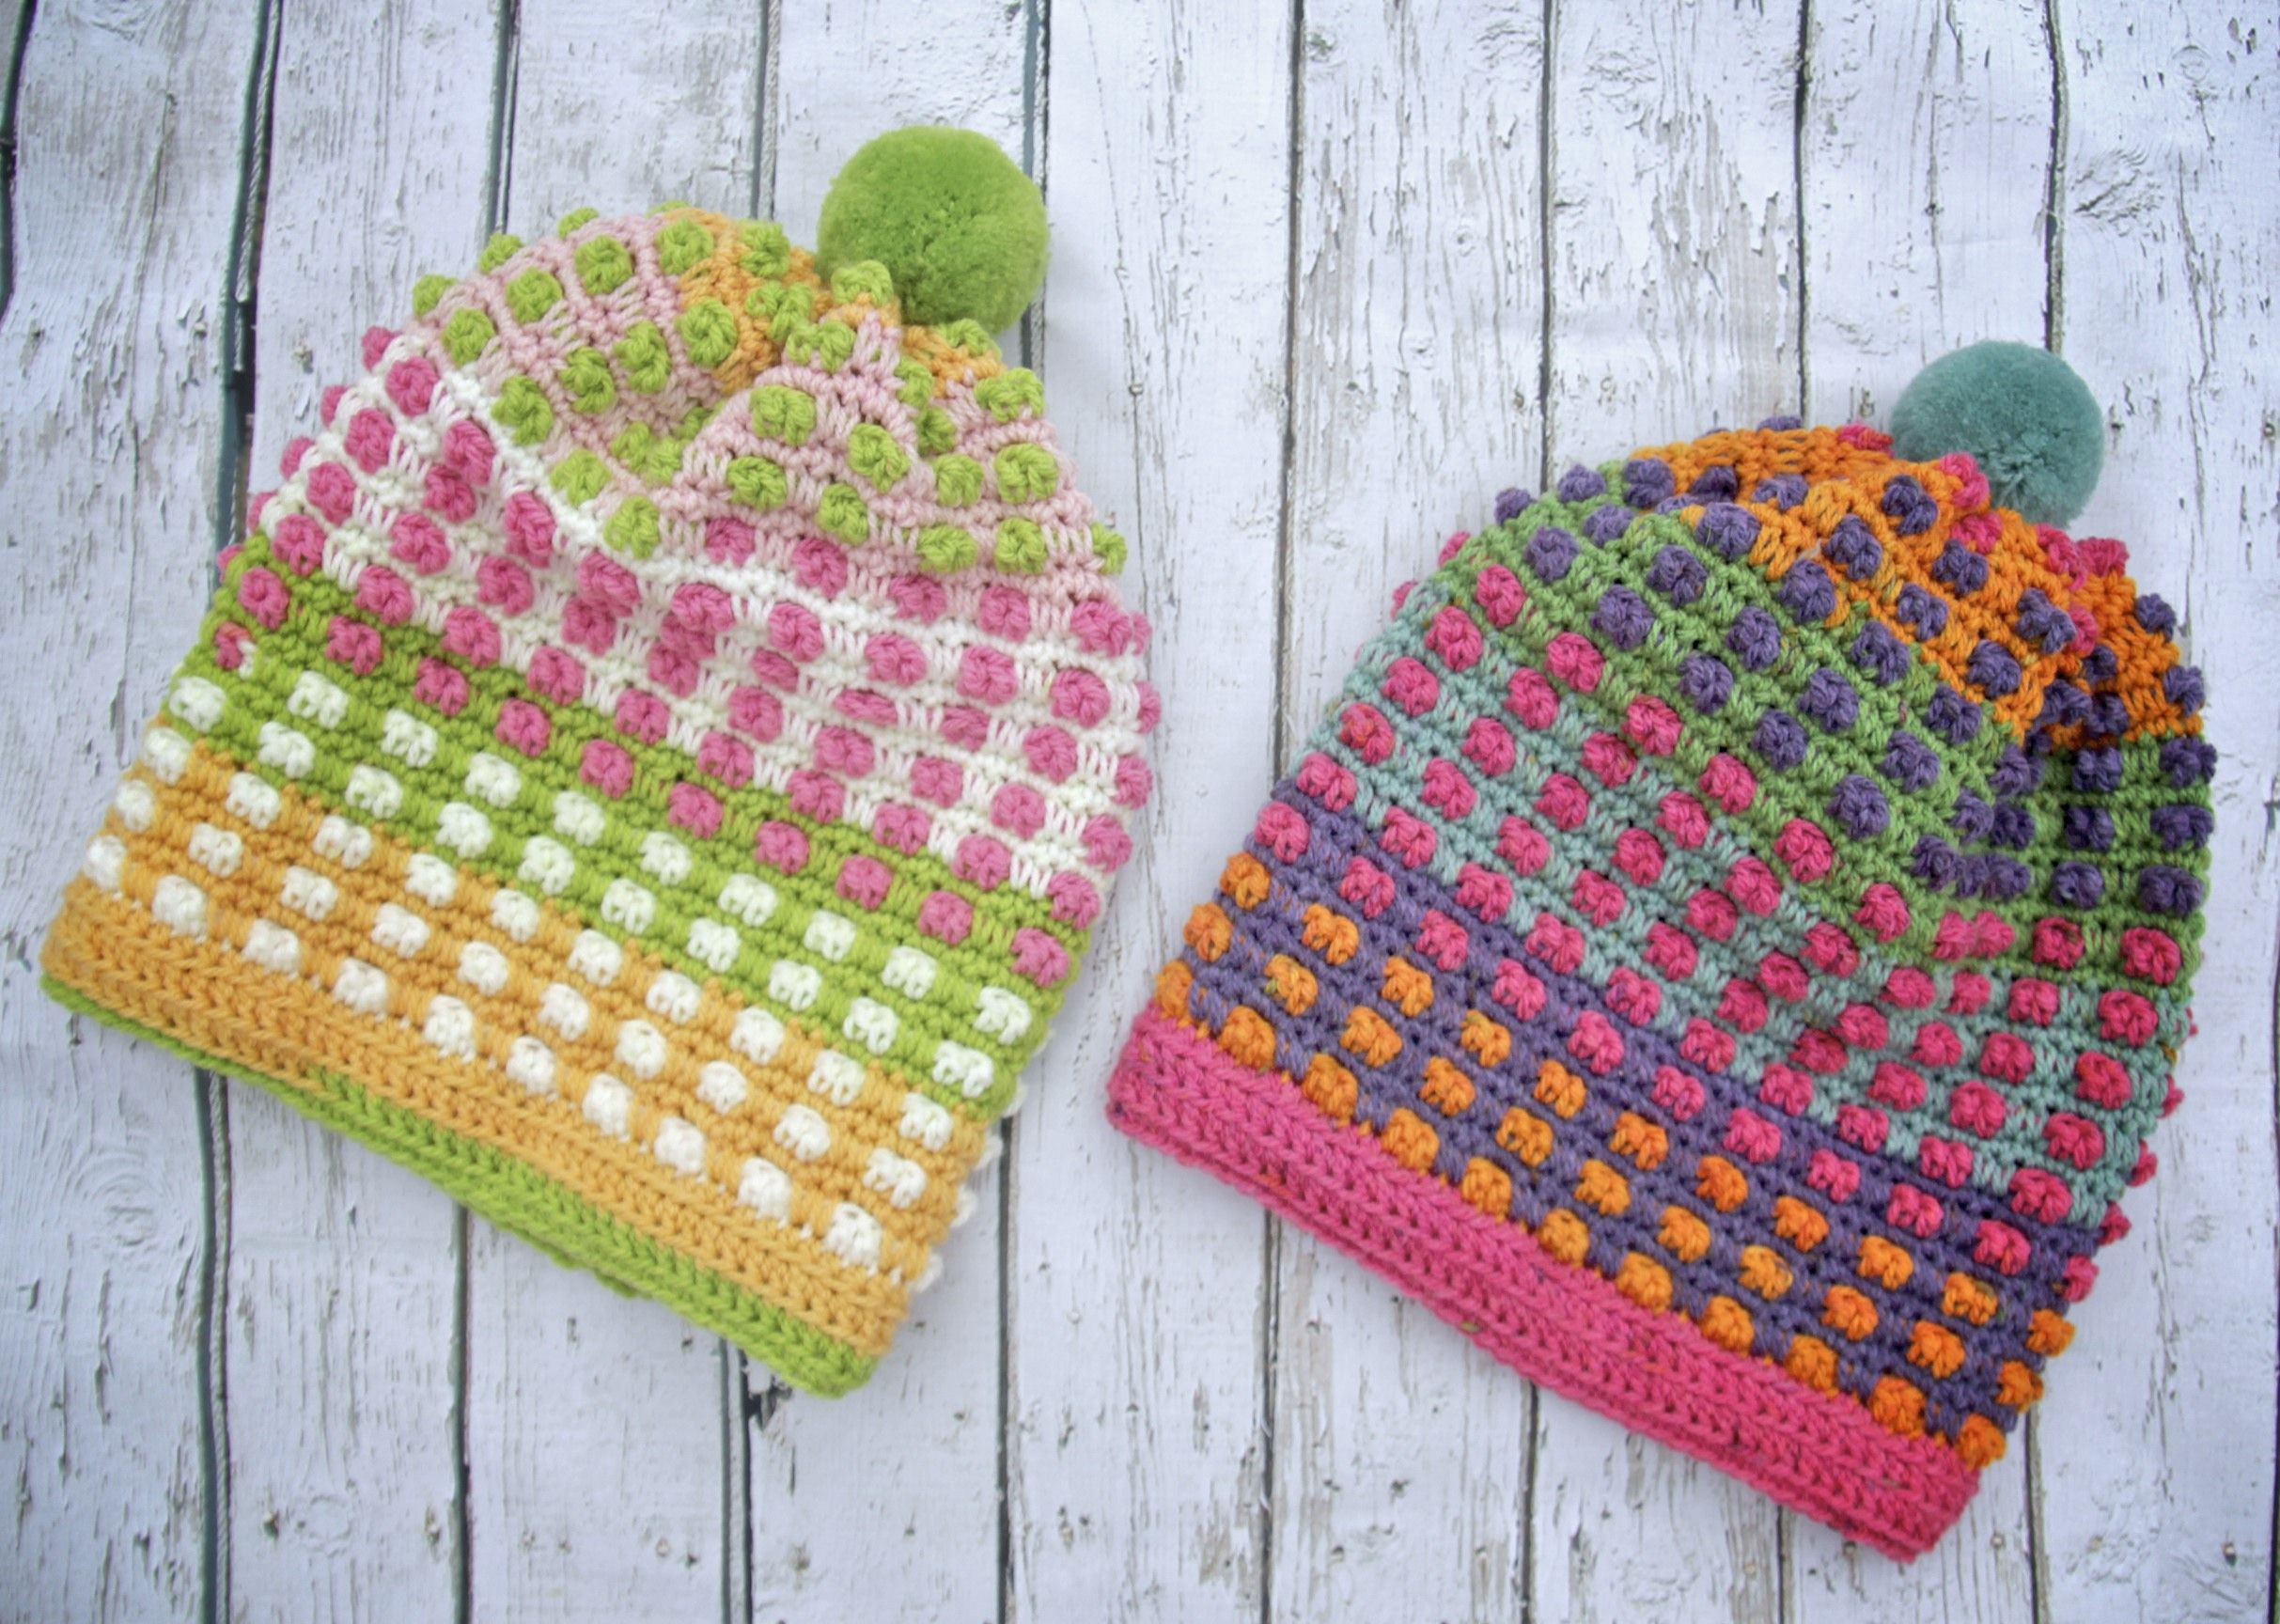 Third installment of my Caron Cupcake hat series! Here is a cute and fun crochet  hat pattern featuring a video tutorial to explain stitch combo and carrying  ... 4af508b5070